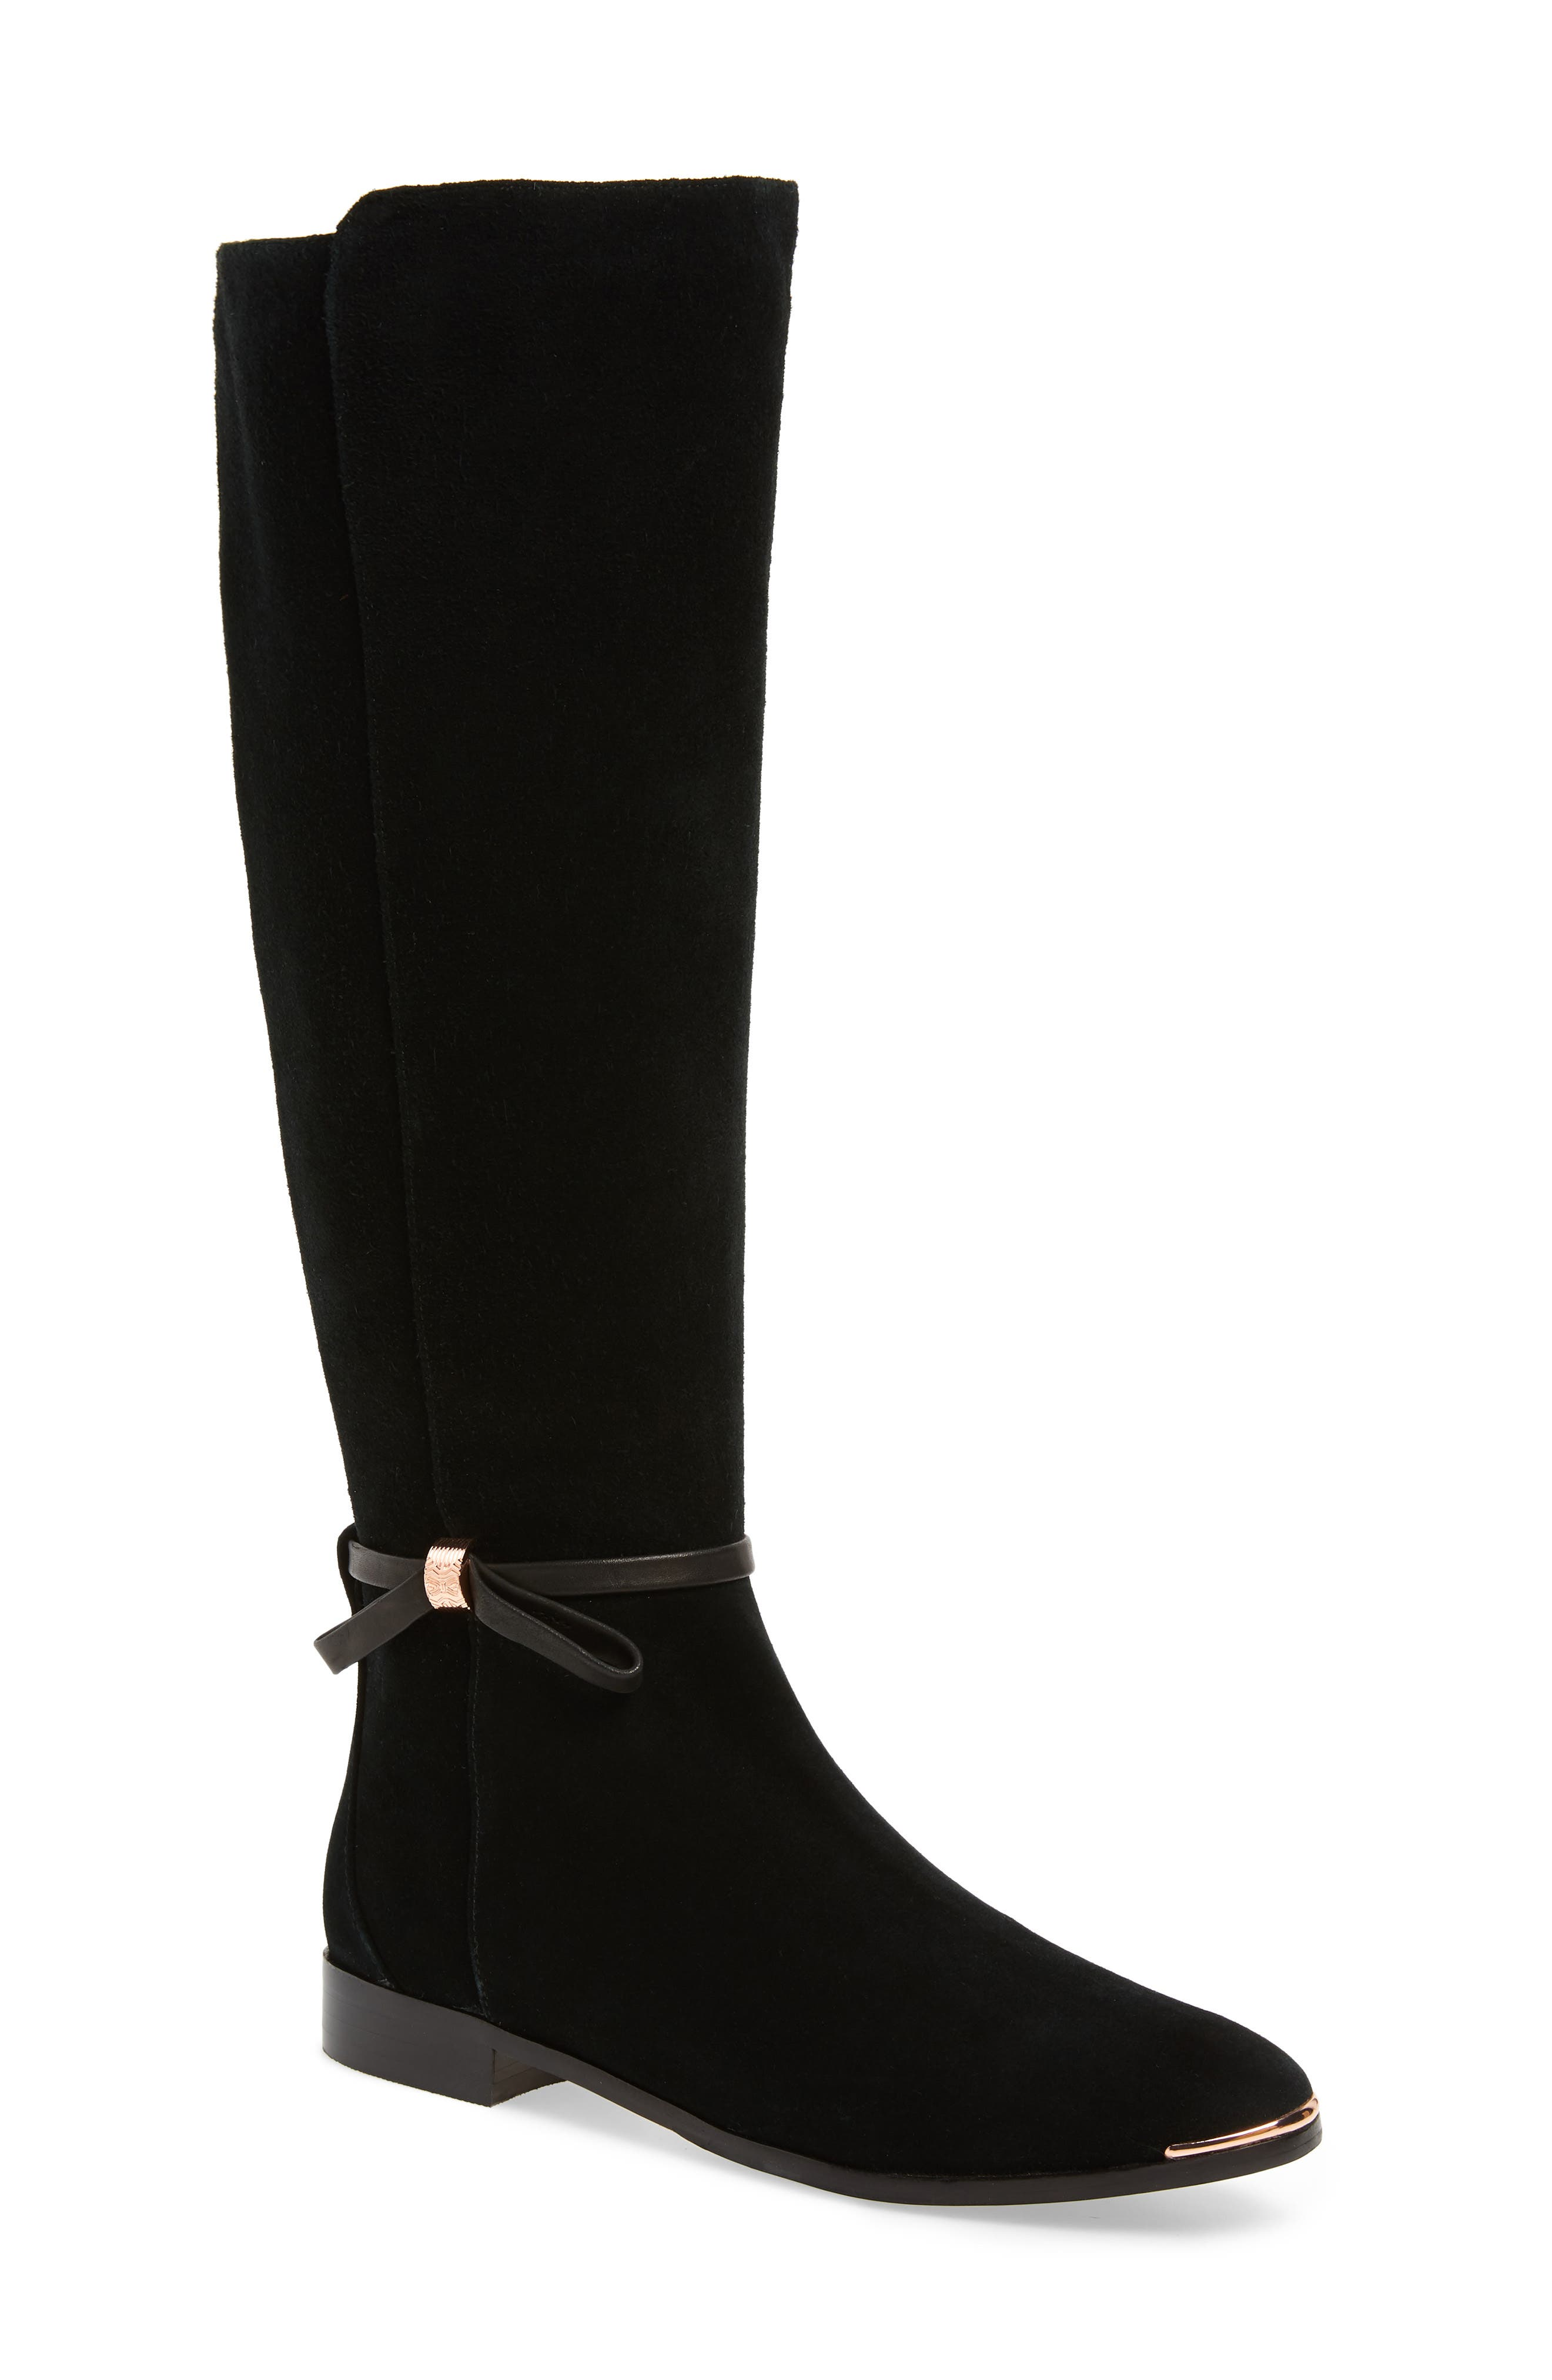 Lykla Knee High Boot,                             Main thumbnail 1, color,                             BLACK SUEDE